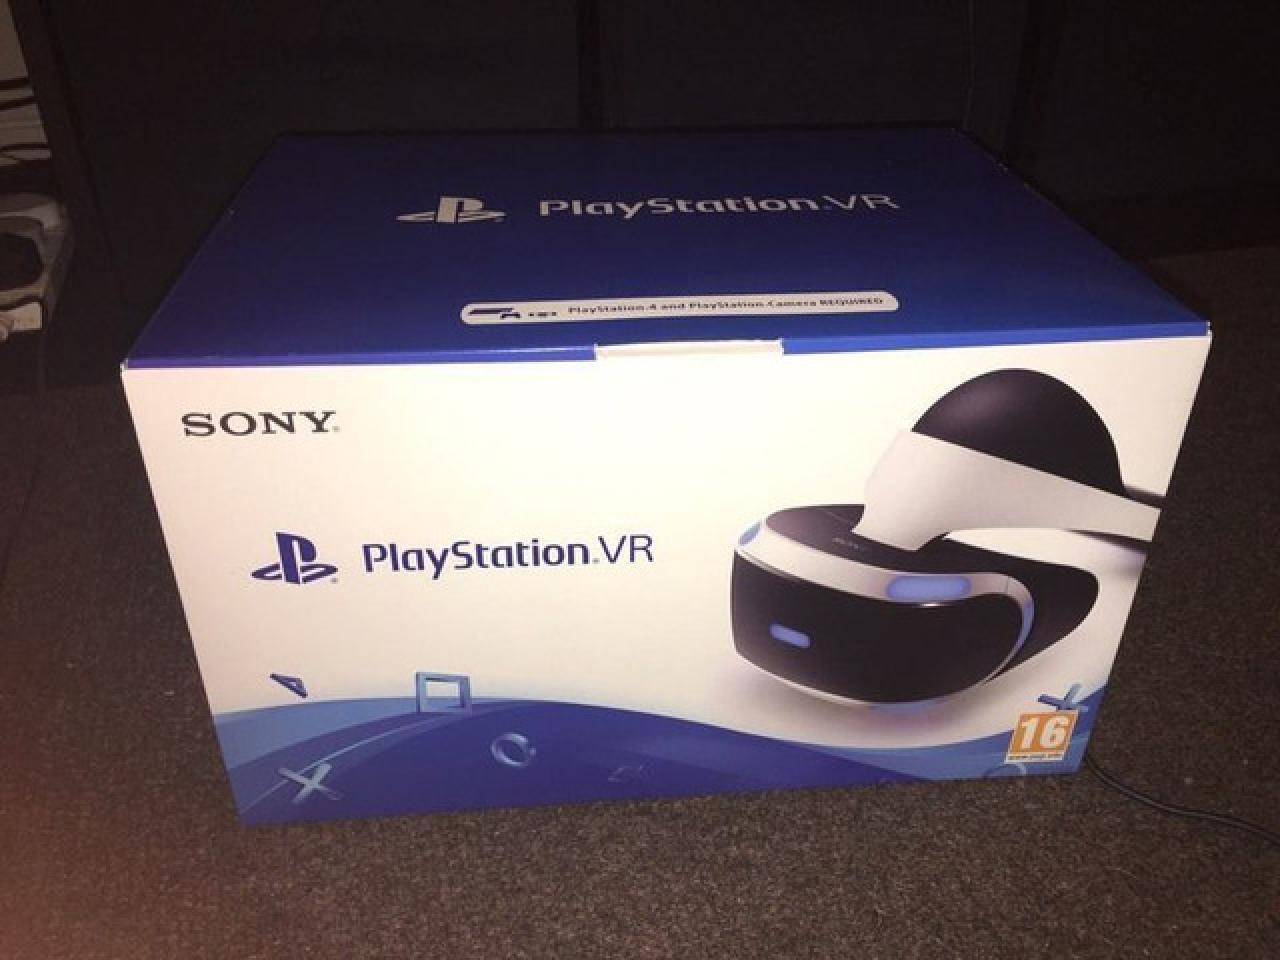 PS4 Pro Playstation 4 Pro 1TB + Playstation VR Headset - New and Sealed - 2